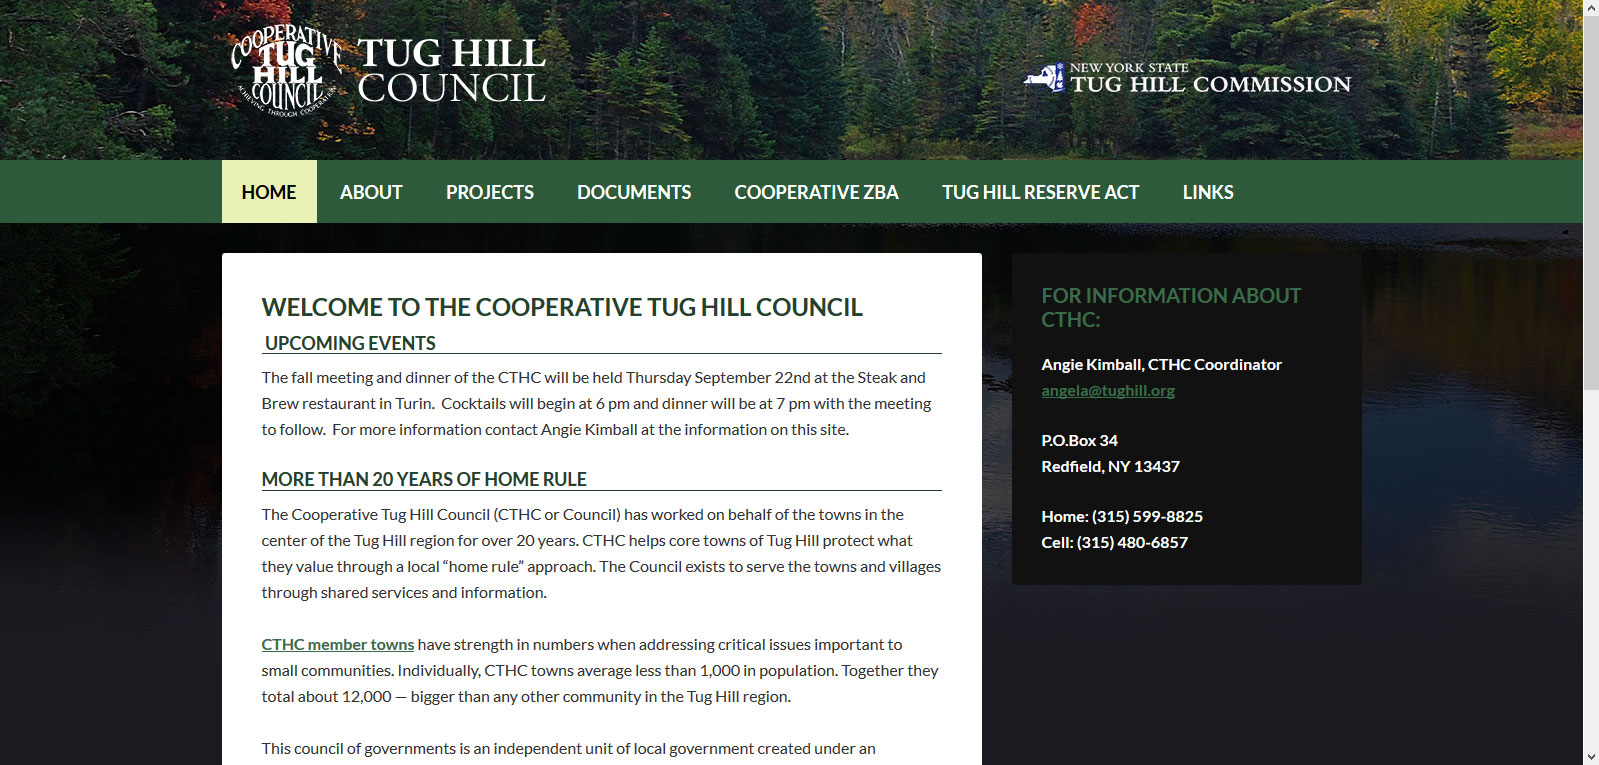 tughill-council